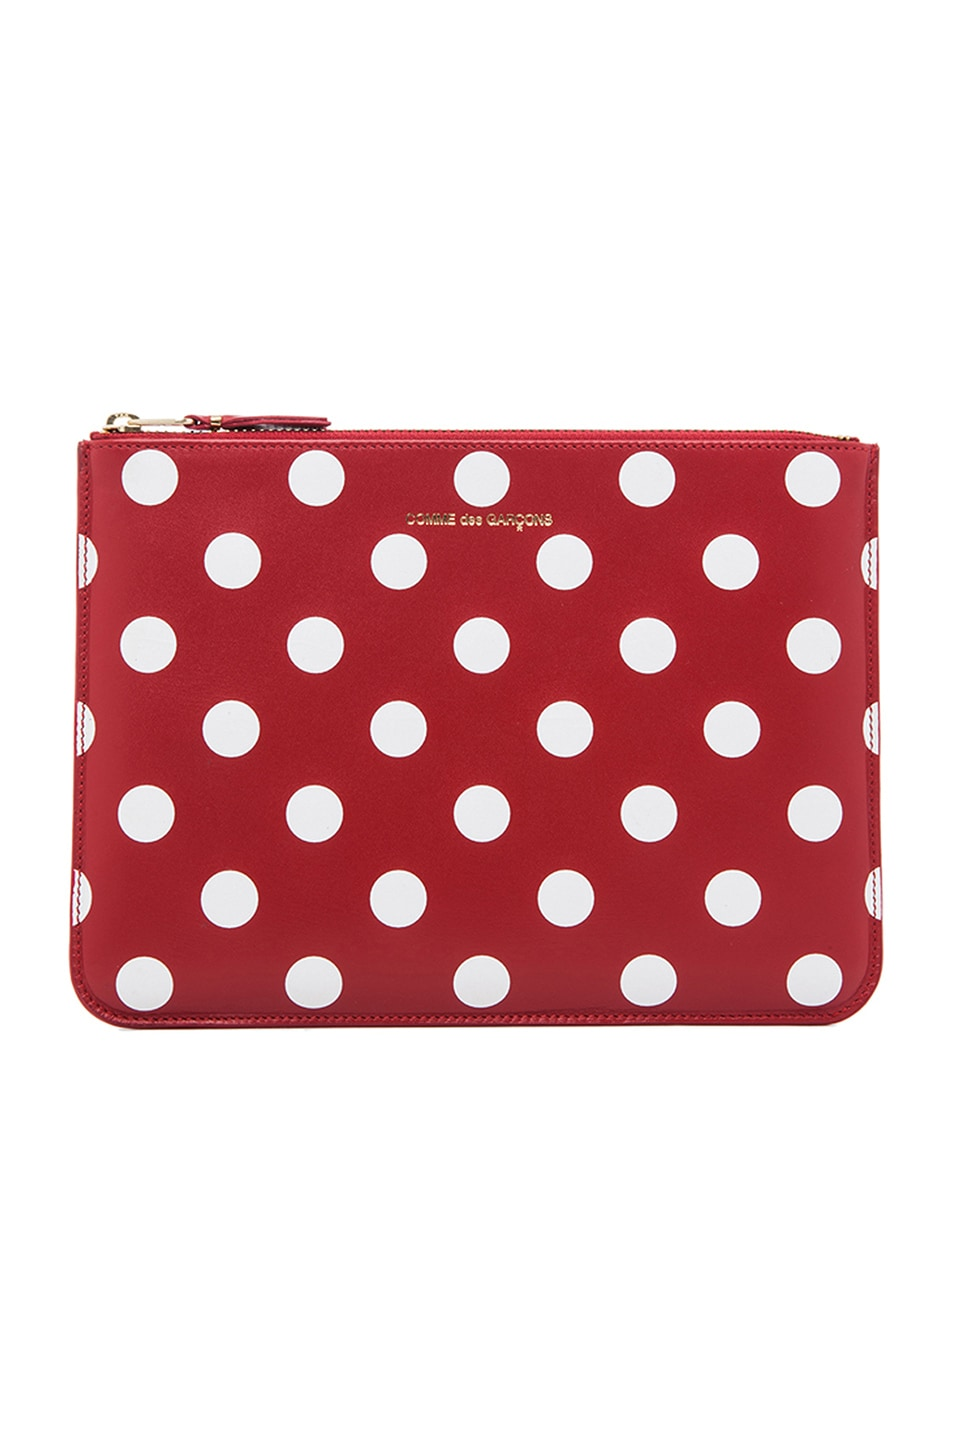 Comme Des Garcons Polka Dot Pouch In Red,Geometric Print